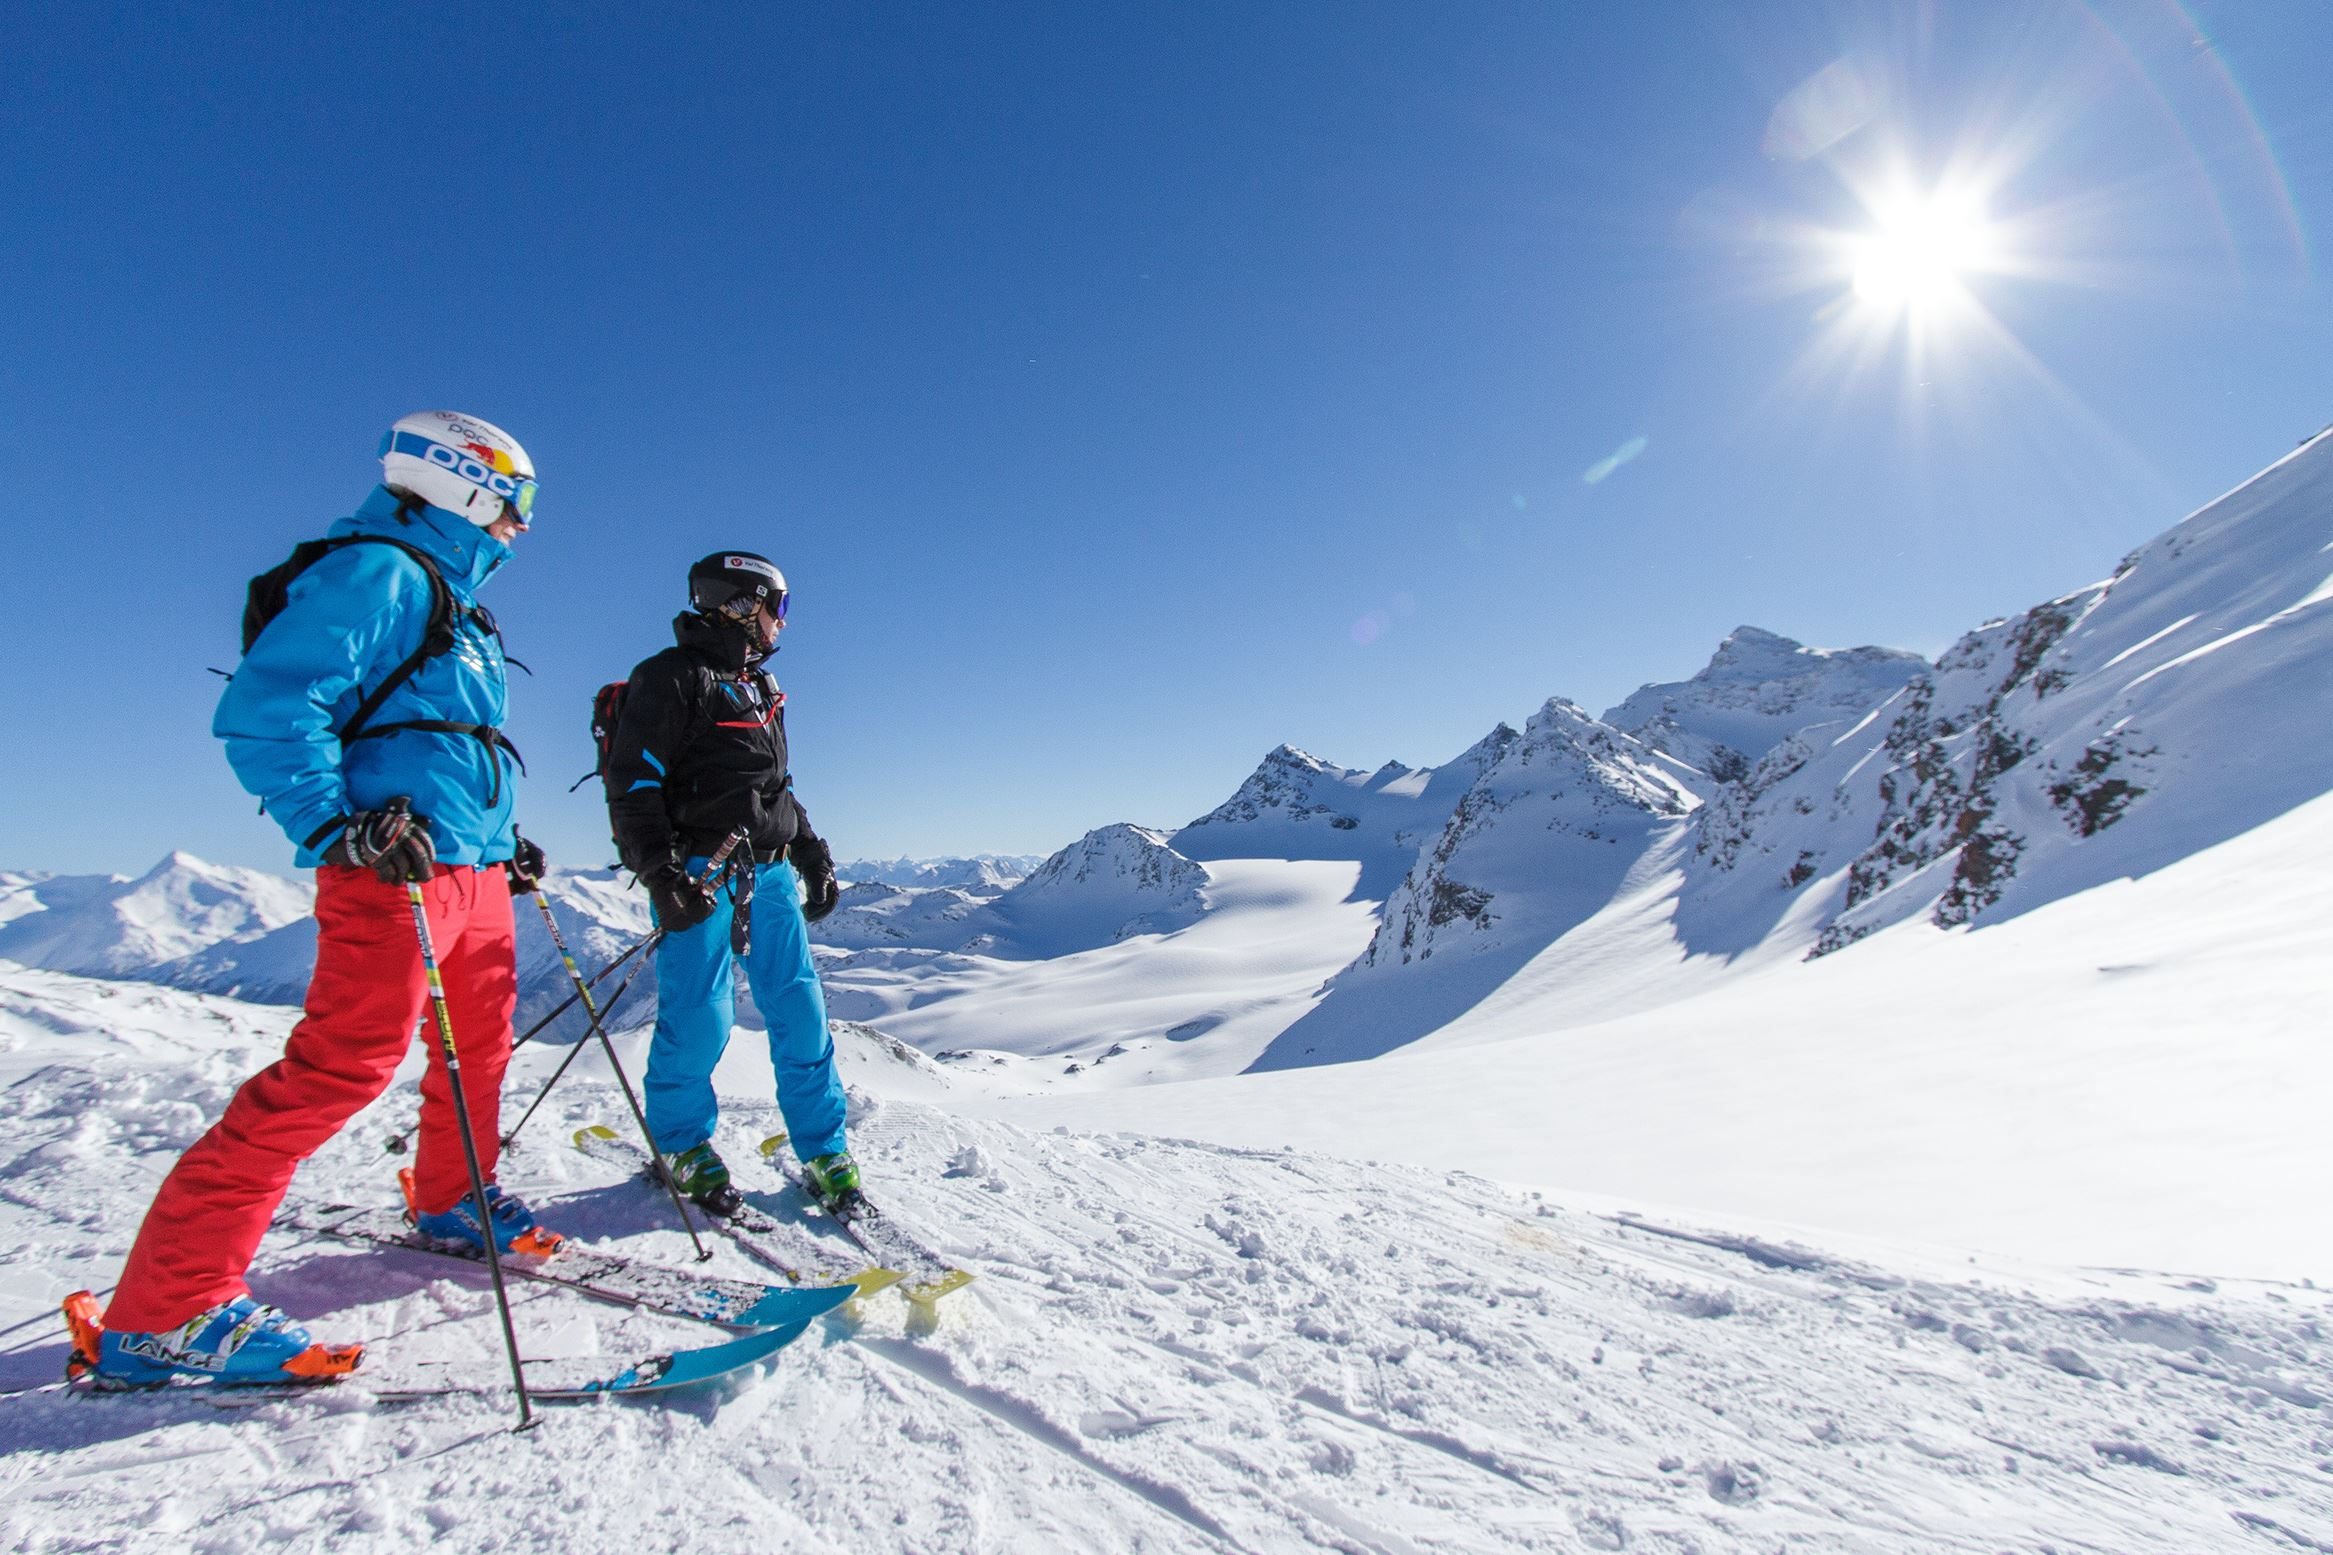 ♥♥♥ GREAT SKI IN THE 3 VALLEYS ♥♥♥ IN RESIDENCE 4* AND 5*